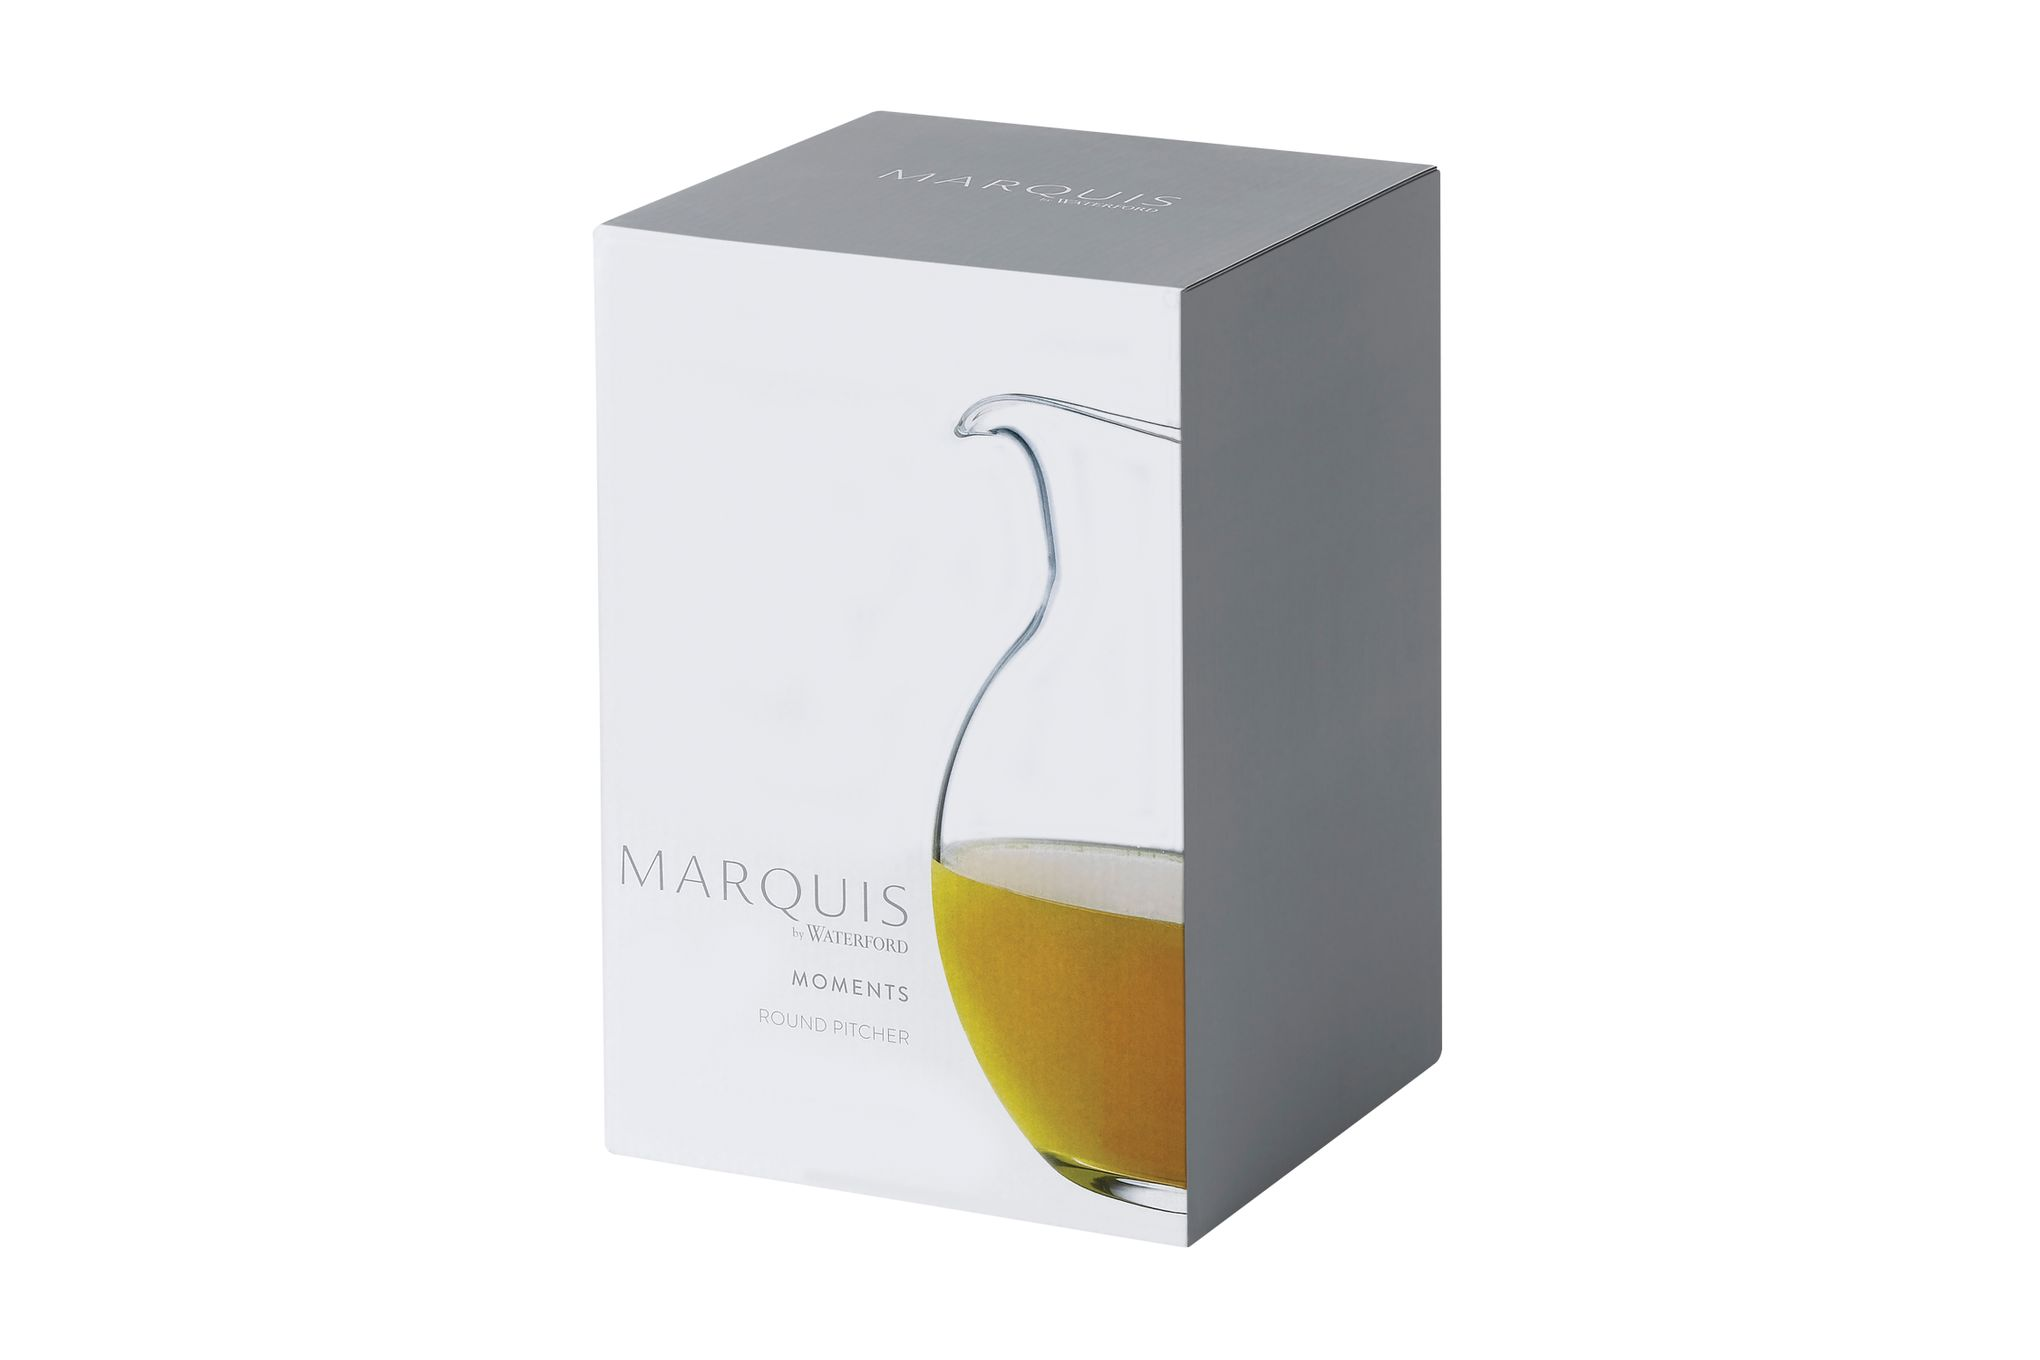 Waterford Marquis Moments Glass Pitcher 1500ml thumb 1